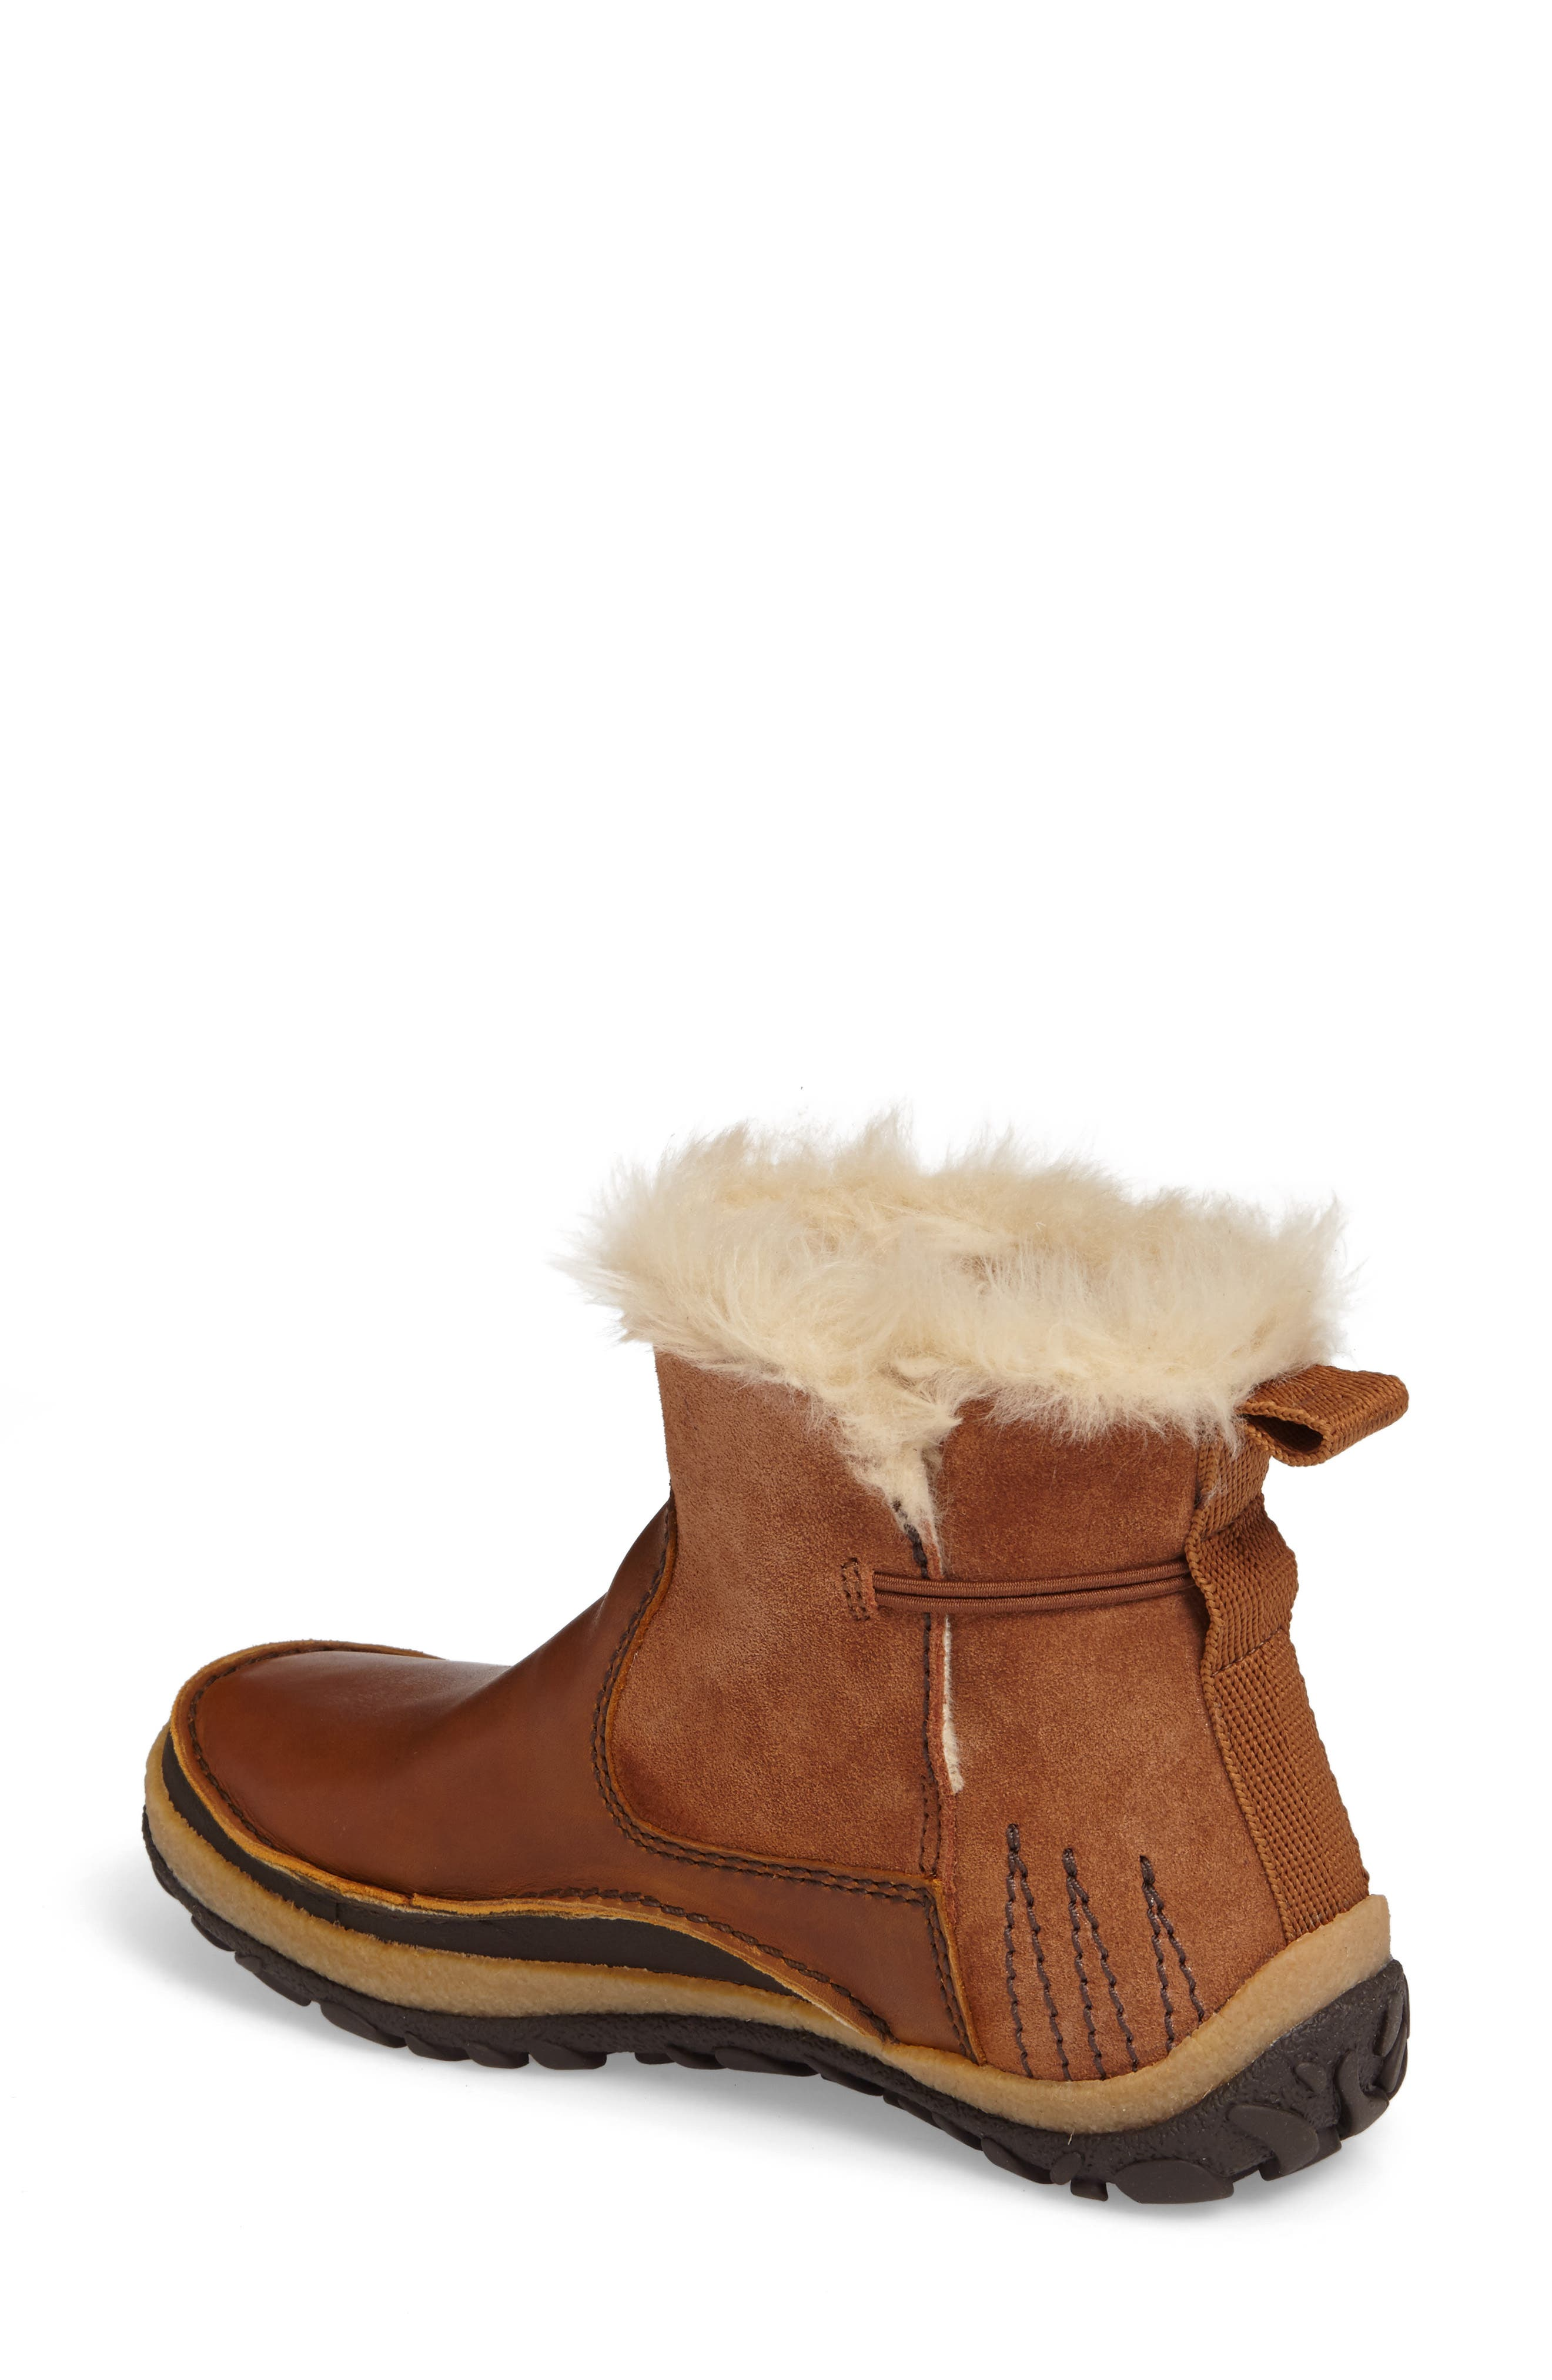 Tremblant Pull-On Polar Waterproof Bootie,                             Alternate thumbnail 6, color,